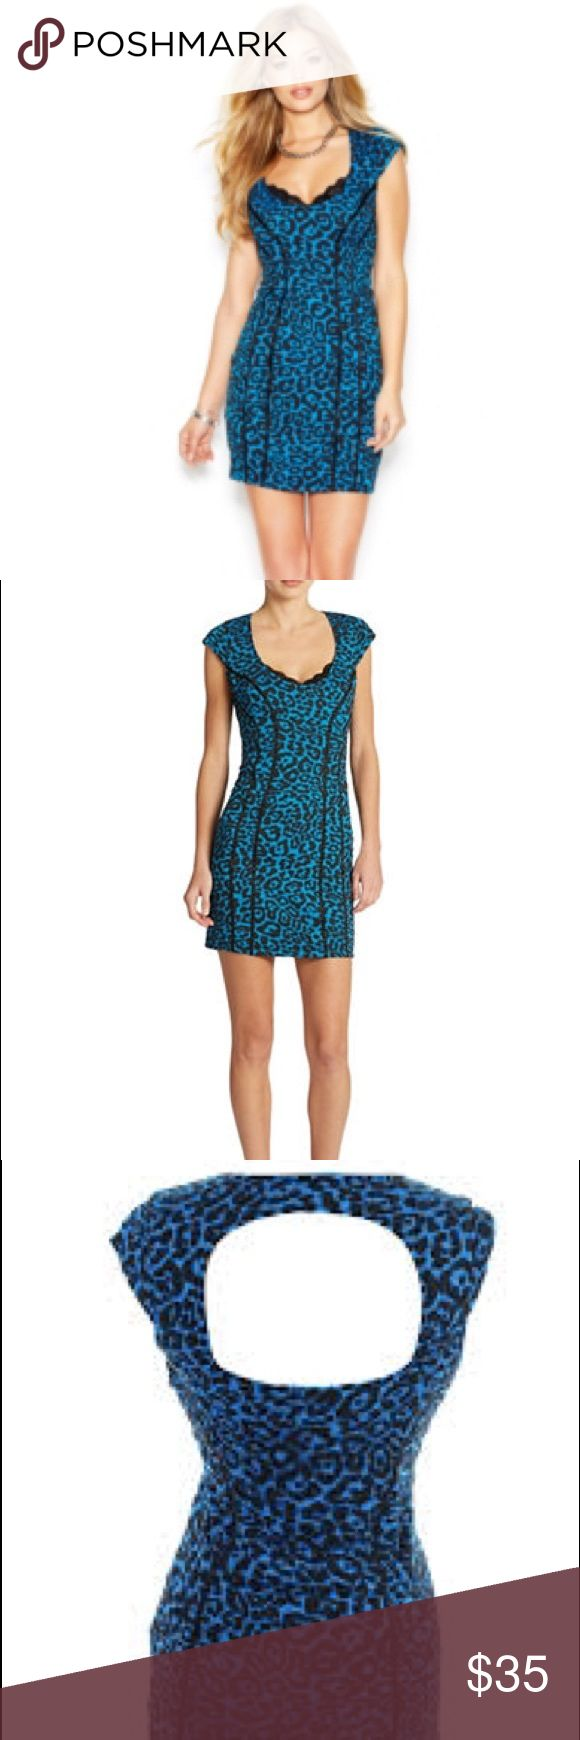 Guess Blue Leopard Print Bodycon Dress  Sexy leopard print dress with cap sleeves is a hot number for going out. Stretchy jersey fabric. Has a cutout in the back and Lace trim above the cleavage  Guess Dresses Mini